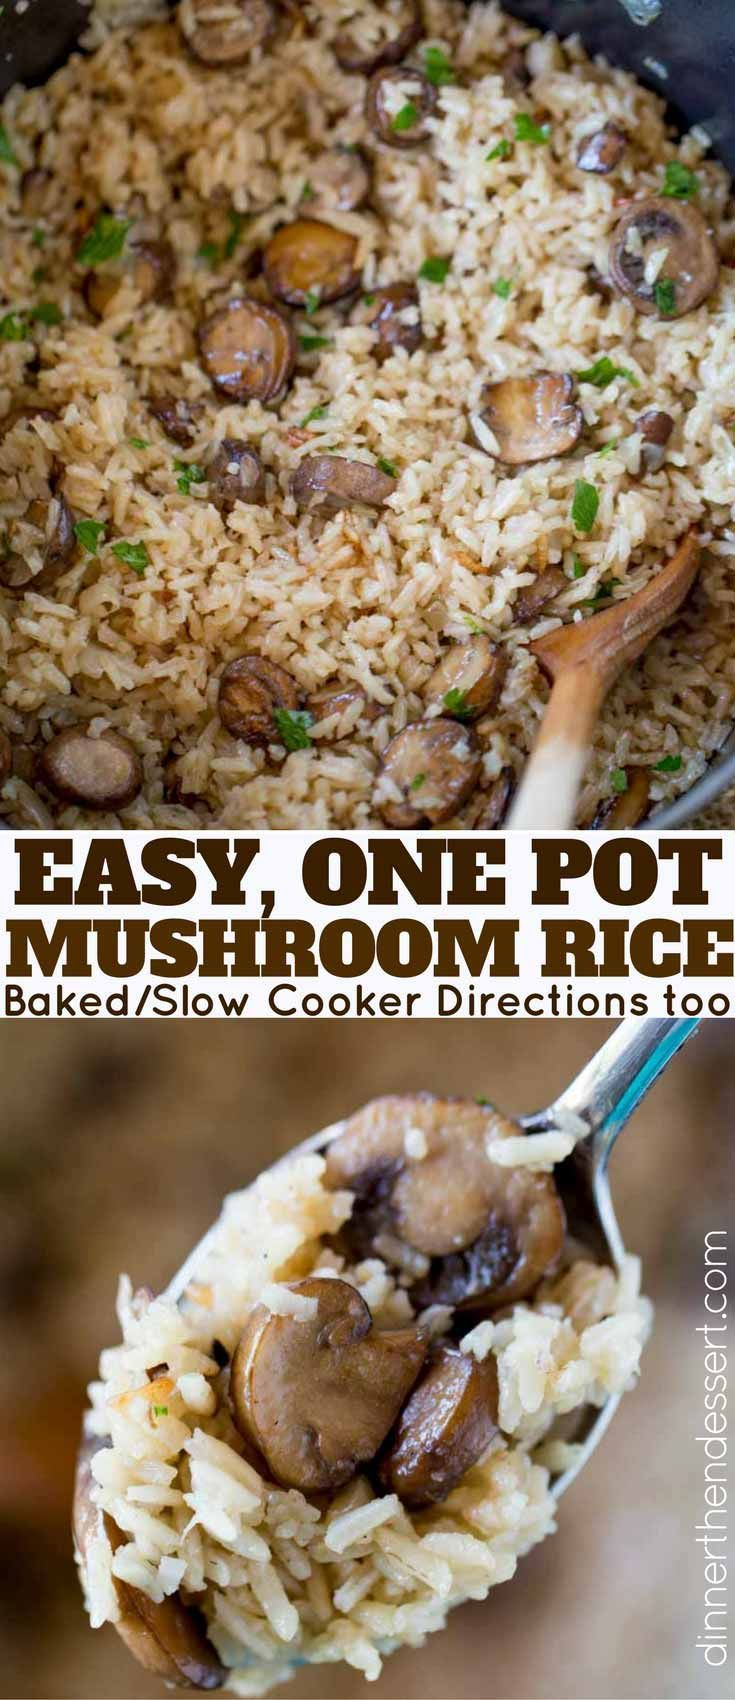 One Pot Mushroom Rice: The best, most buttery and mushroom-y rice you'll ever make. A PERFECT holiday side dish.